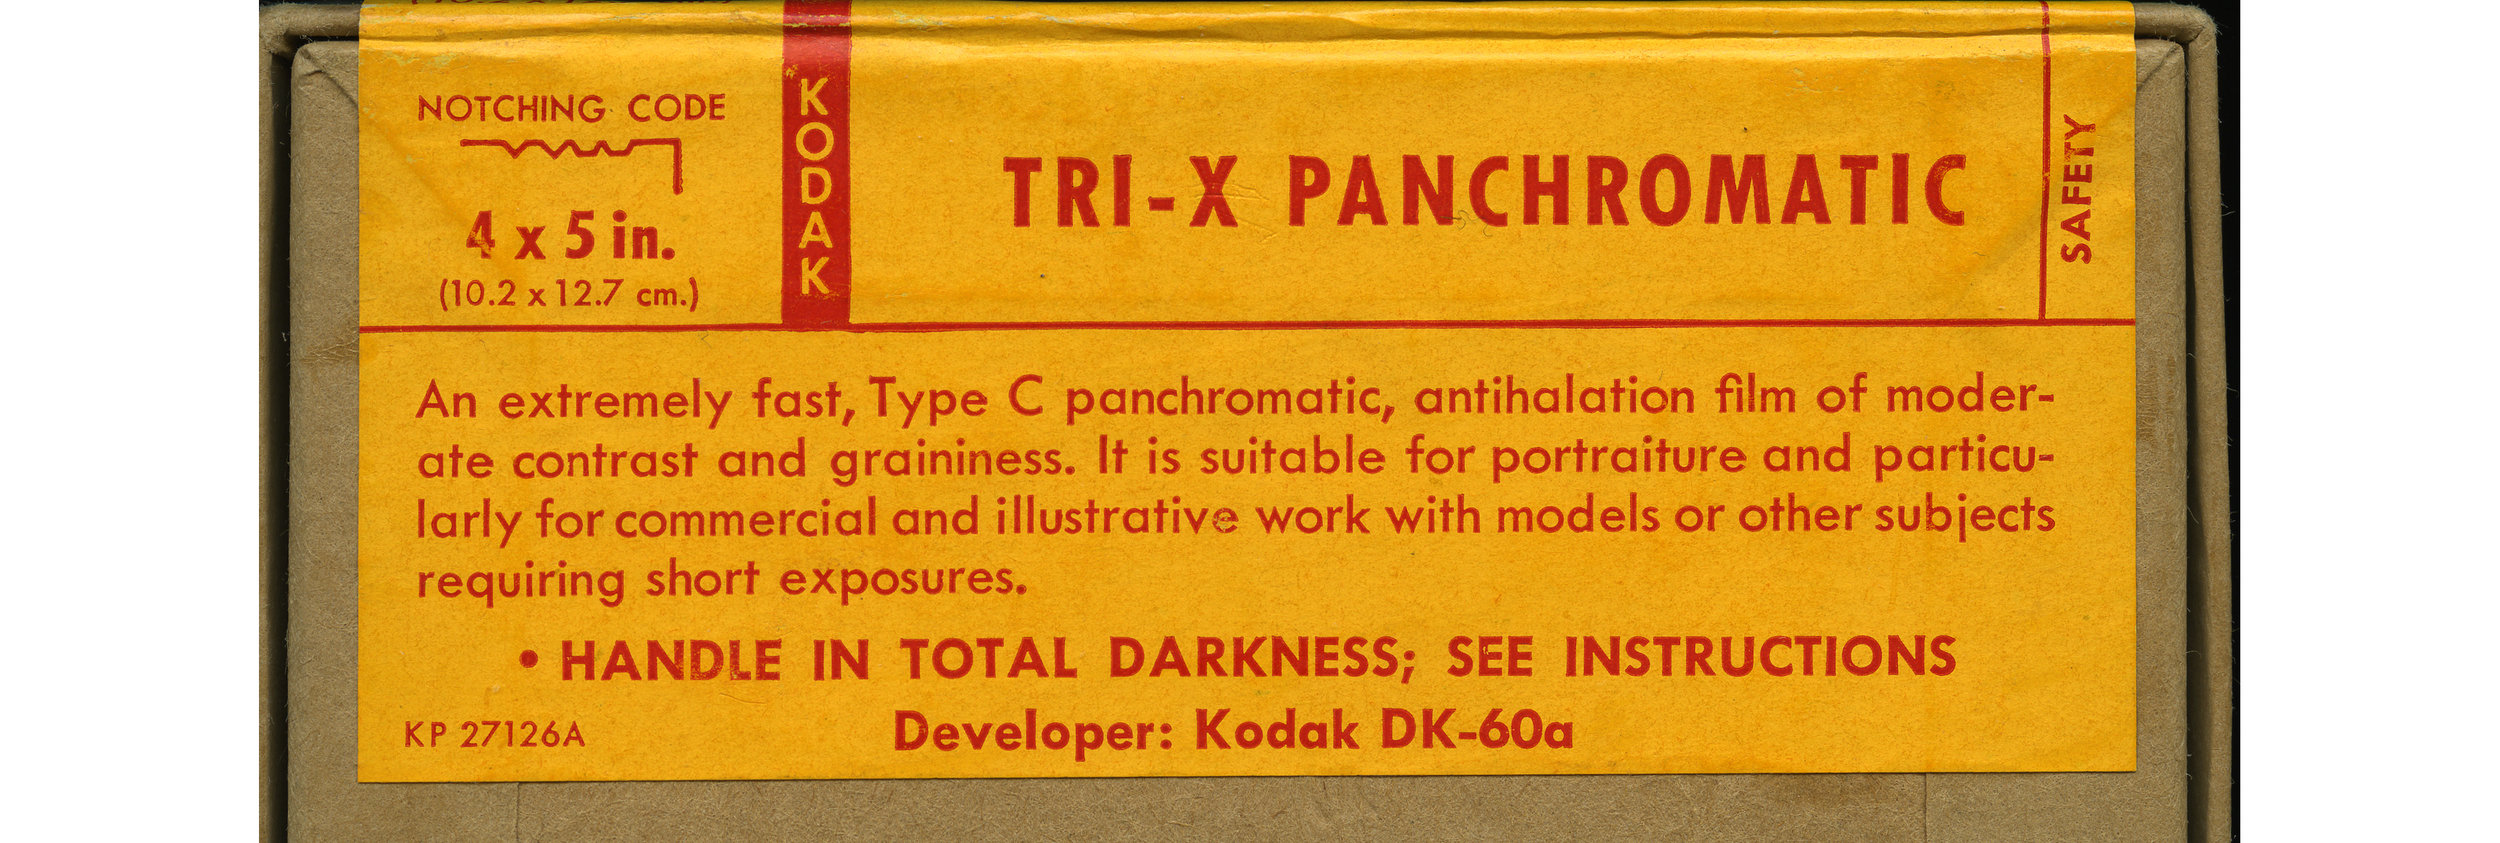 Introduced around 1940, Kodak Tri-x is my film of choice. Thankfully (as so many film have since been discontinued) it is still in production today. Pictured,is the identification label on the back of a vintage box of 4x5 inch Tri-x sheet film from the 1940's.